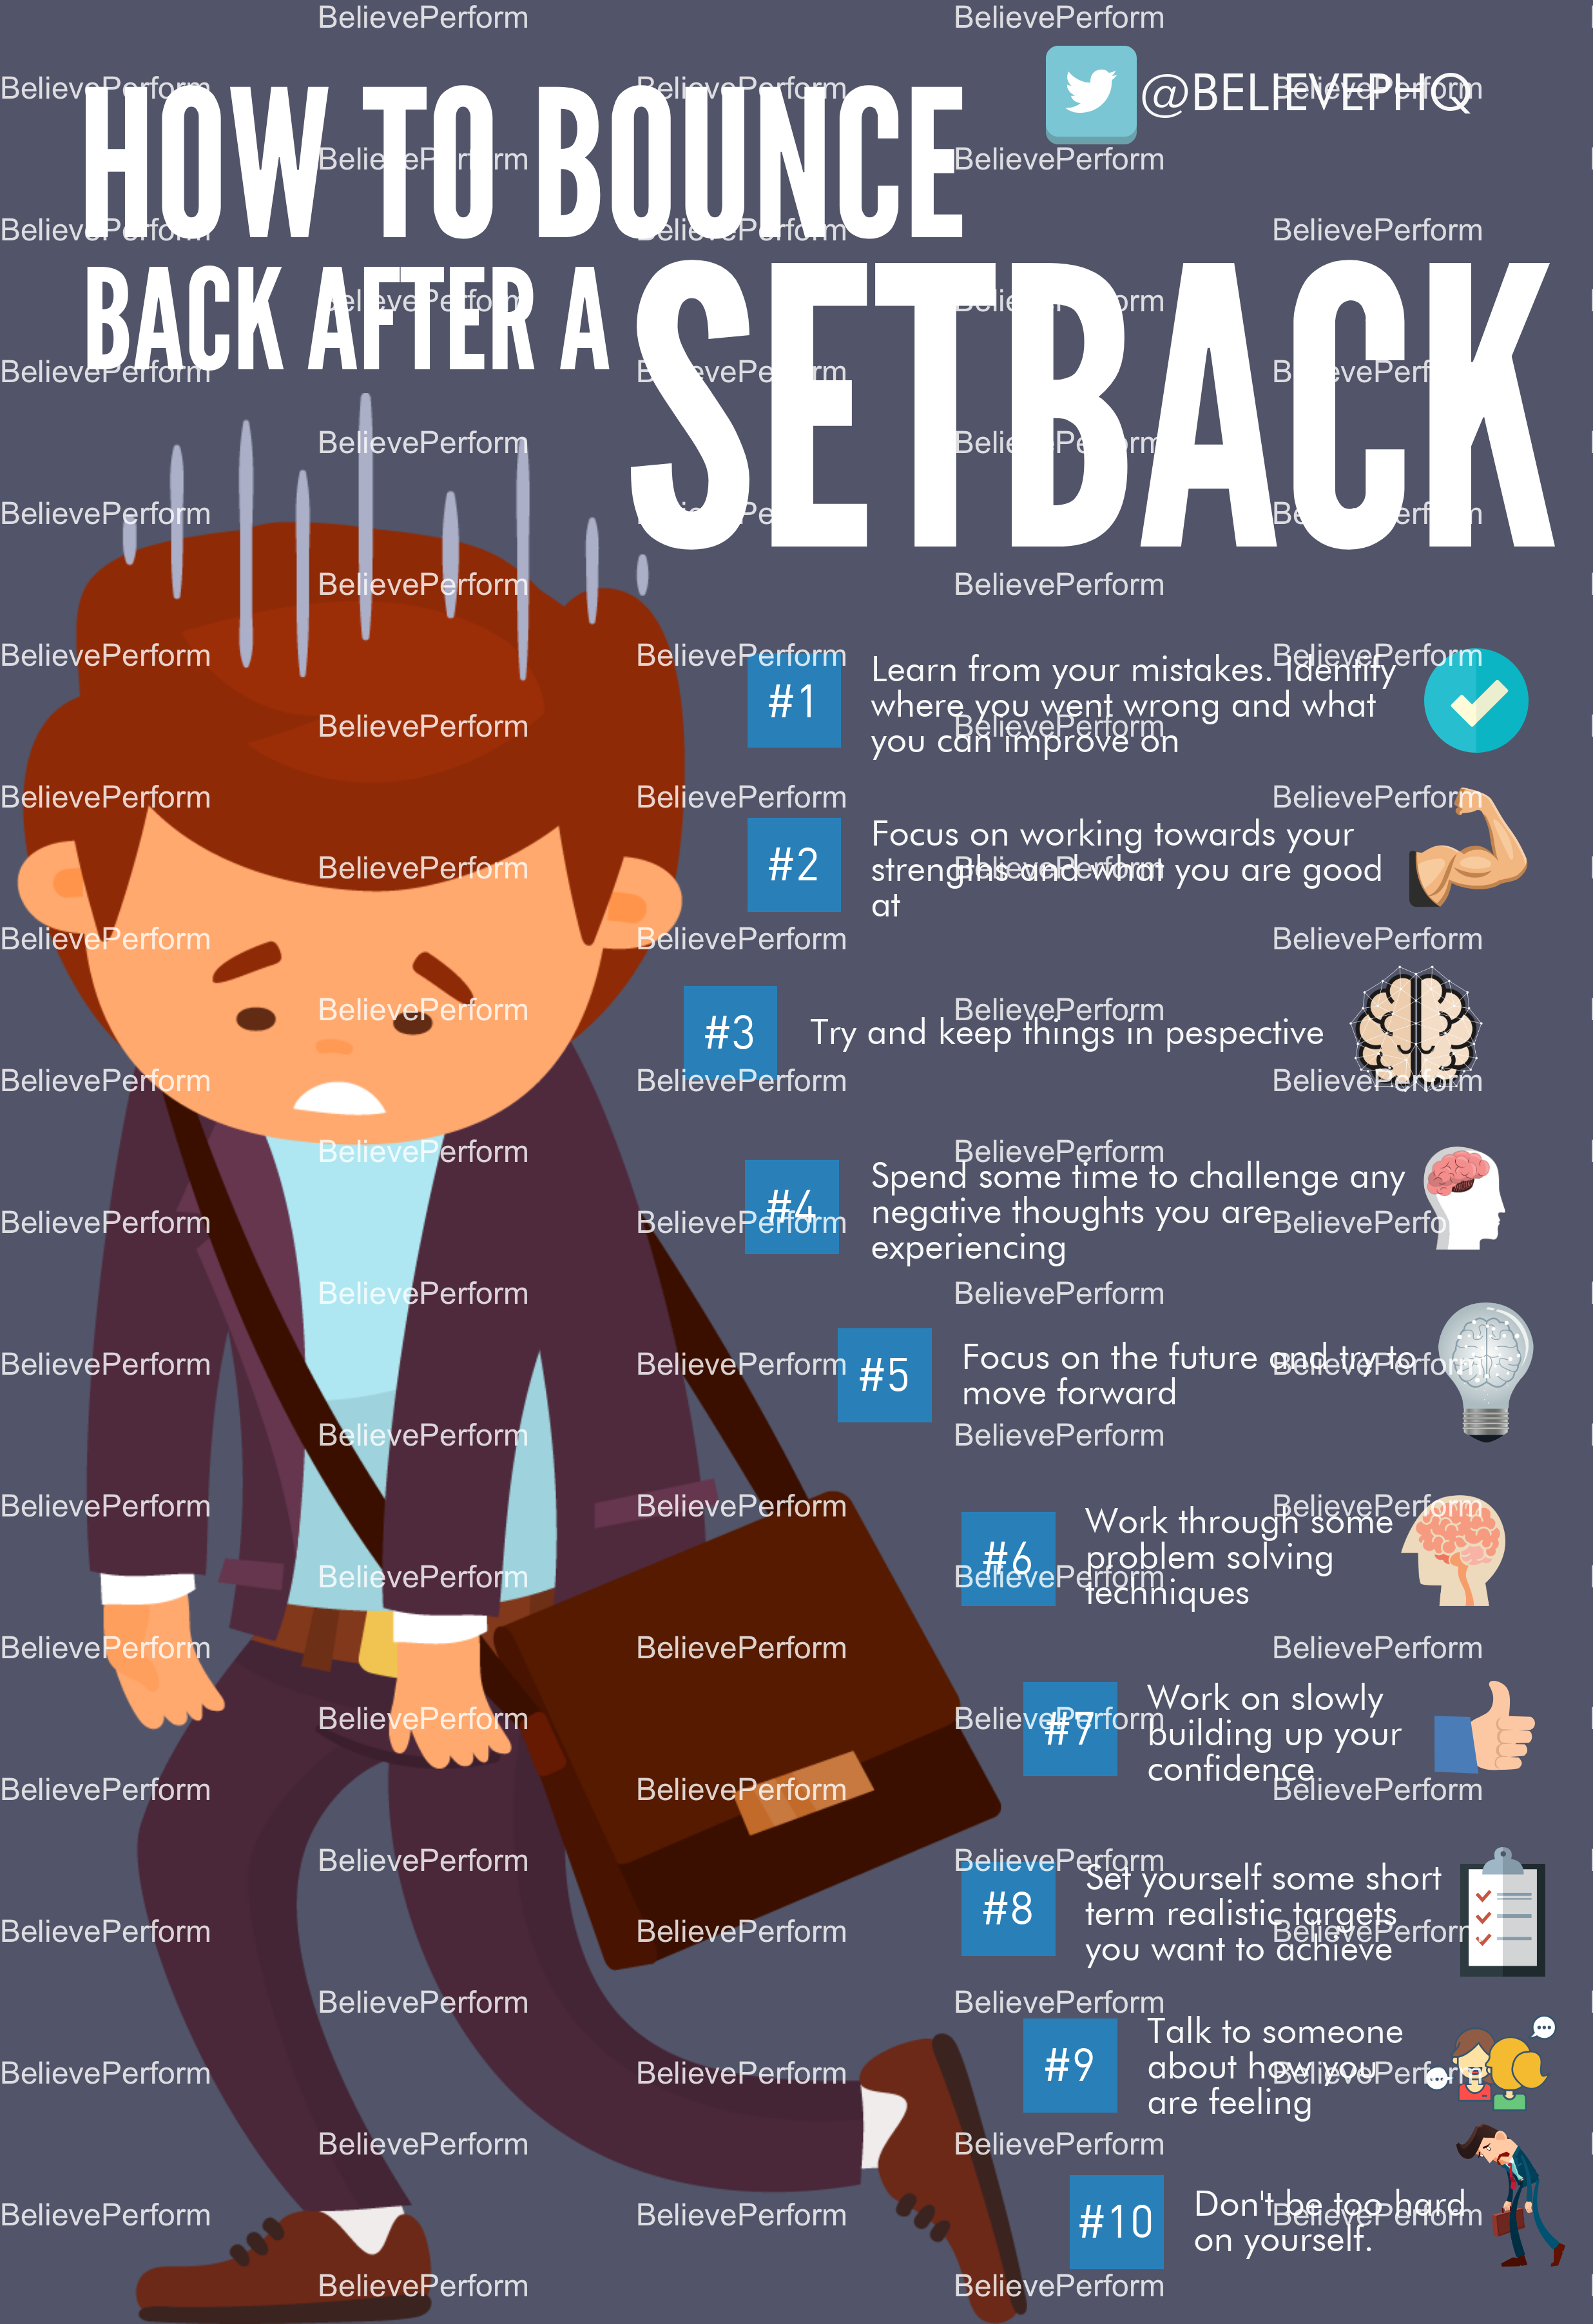 How to bounce back after a setback